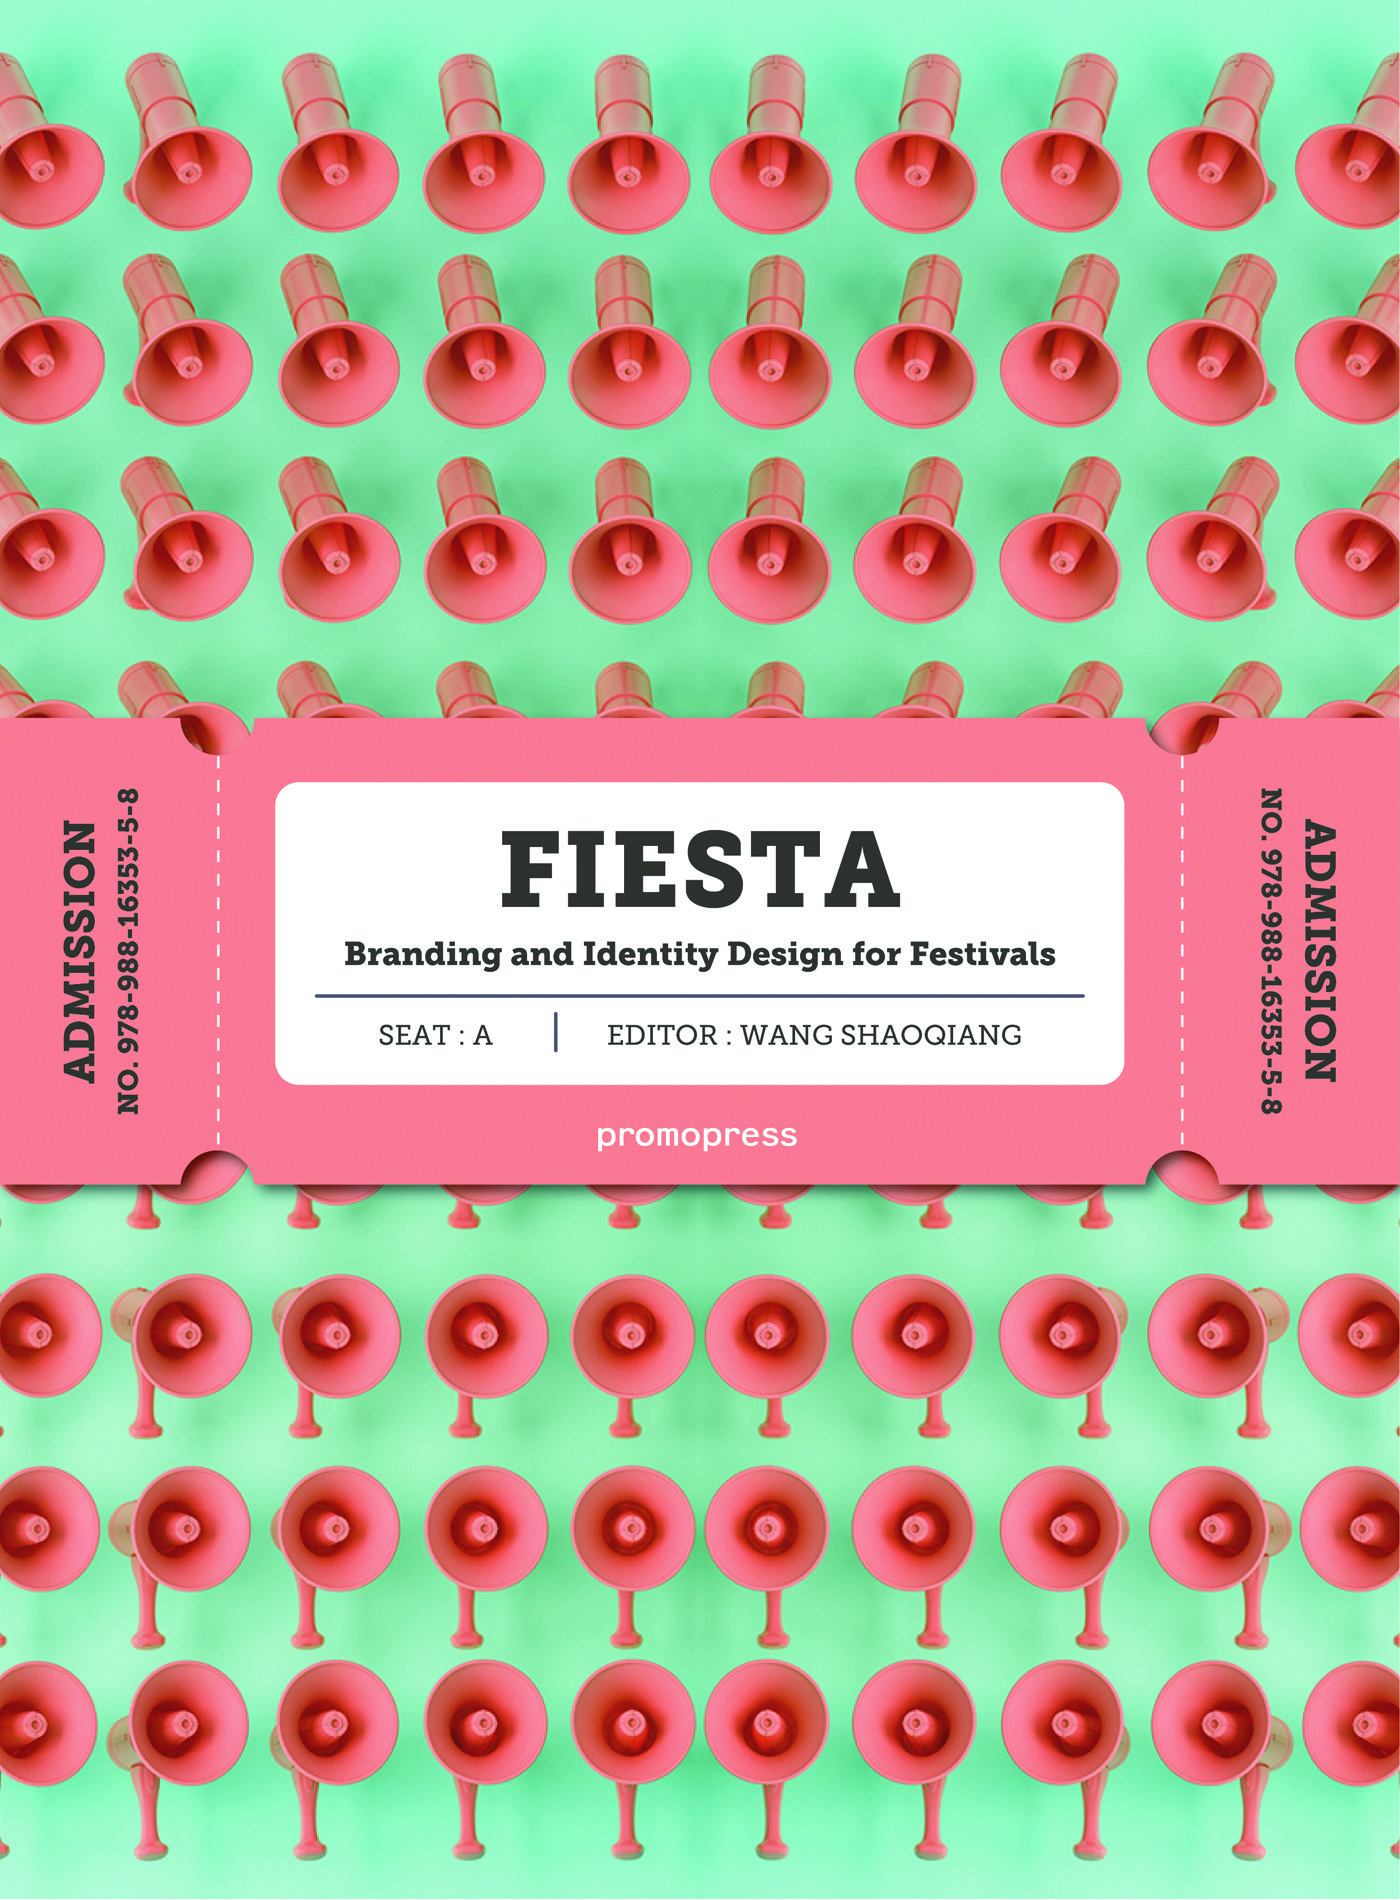 fiesta: branding and identity design for festials-wang shaoqiang-9788416851362